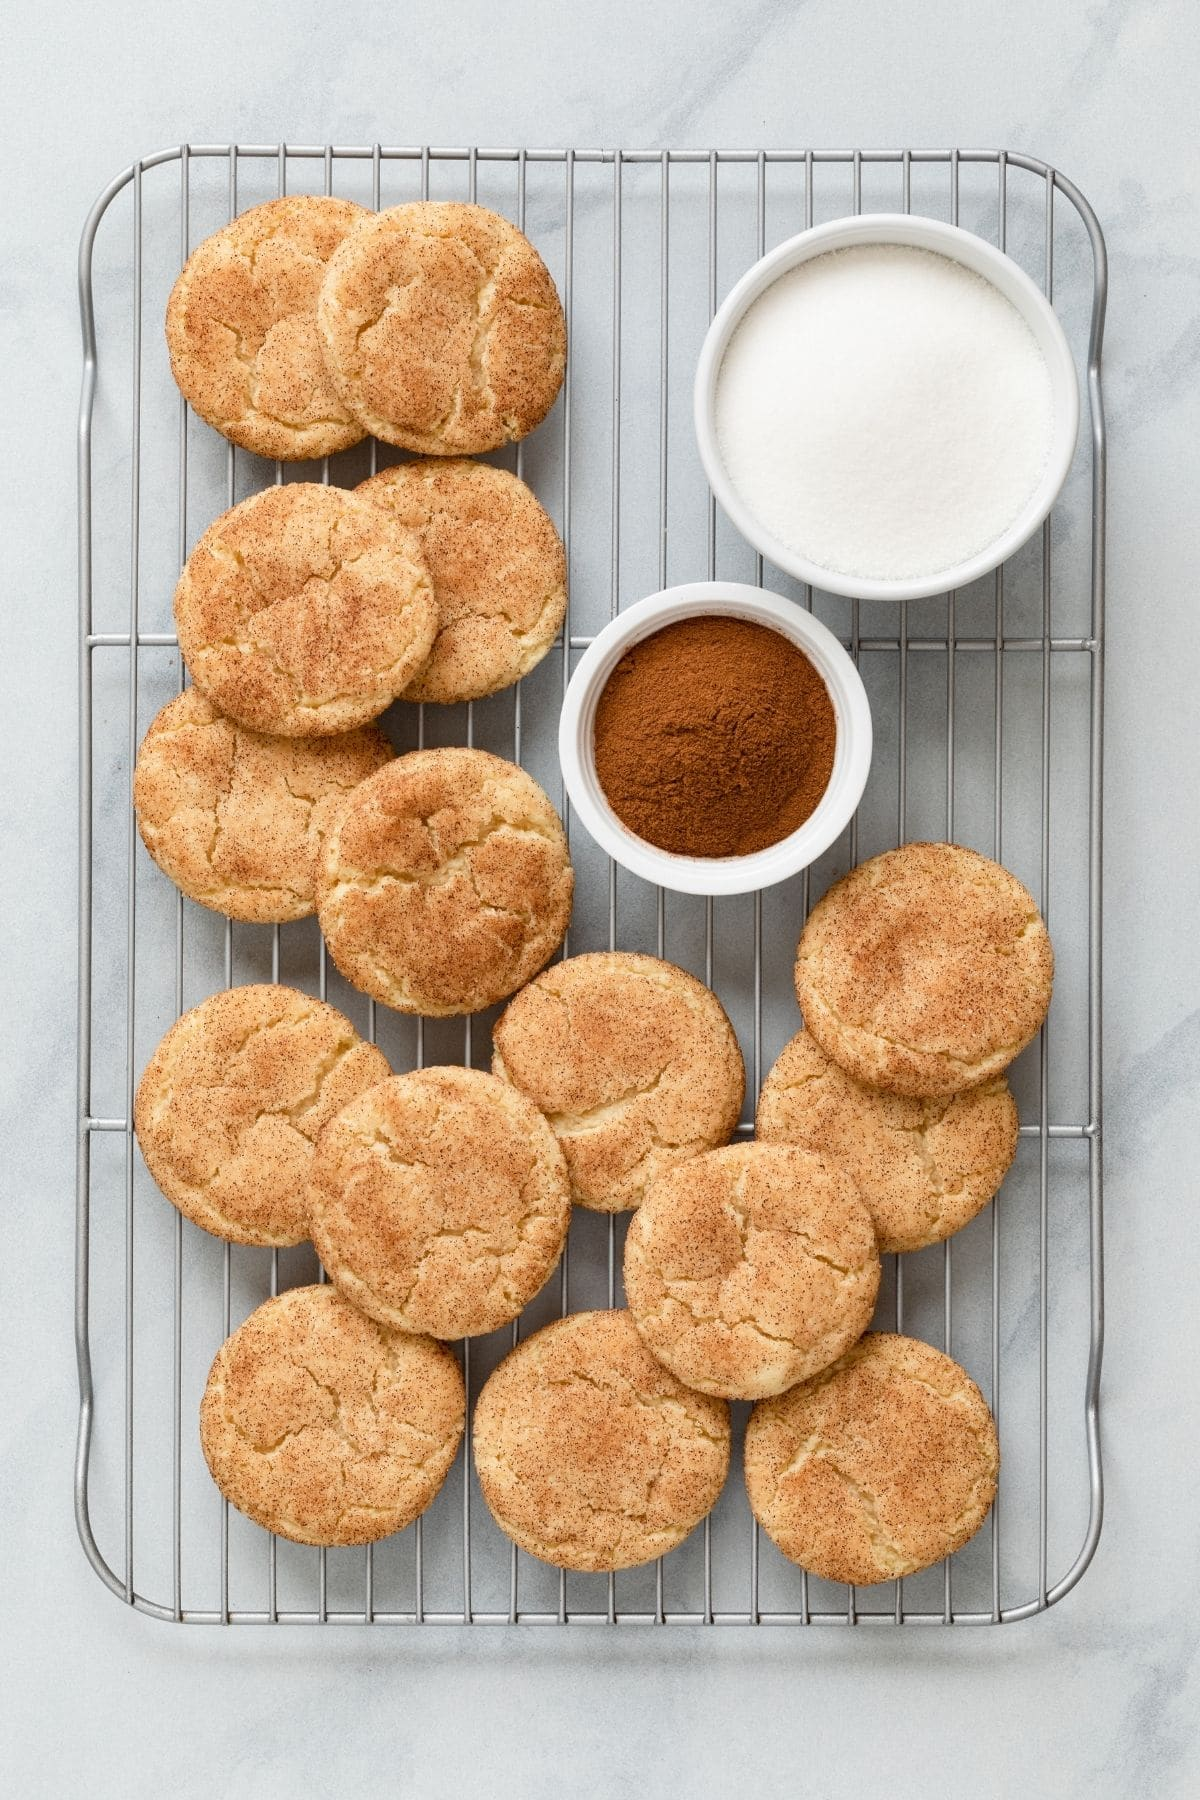 snickerdoodle cookies on wire rack with bowls of cinnamon and sugar